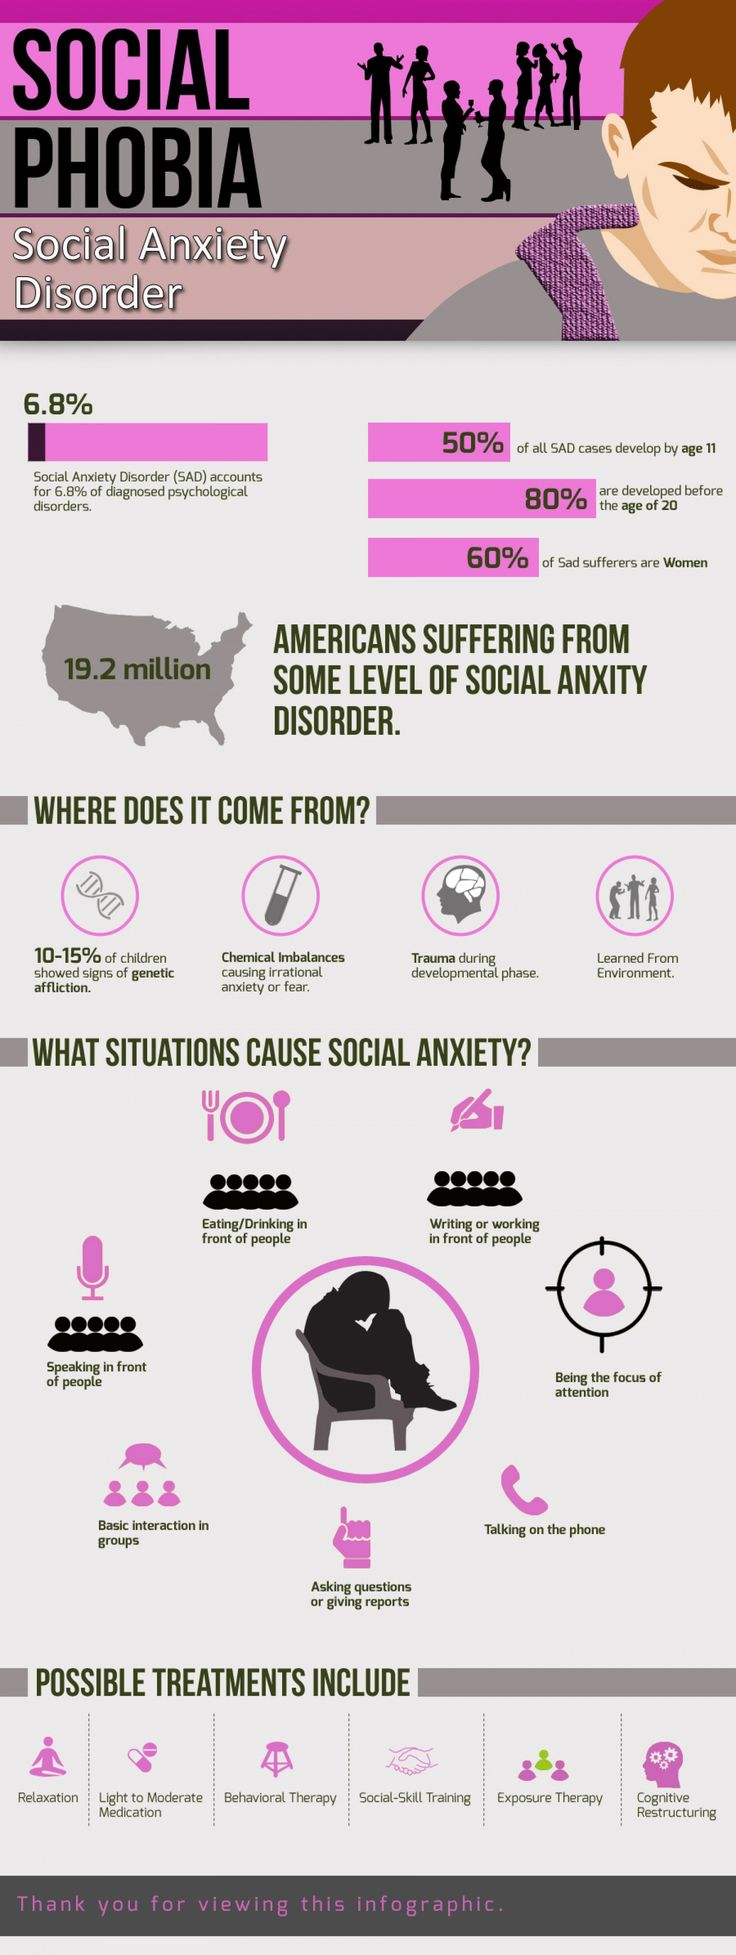 Social Anxiety Infographic, #anxiety #phobia #mentalhealth